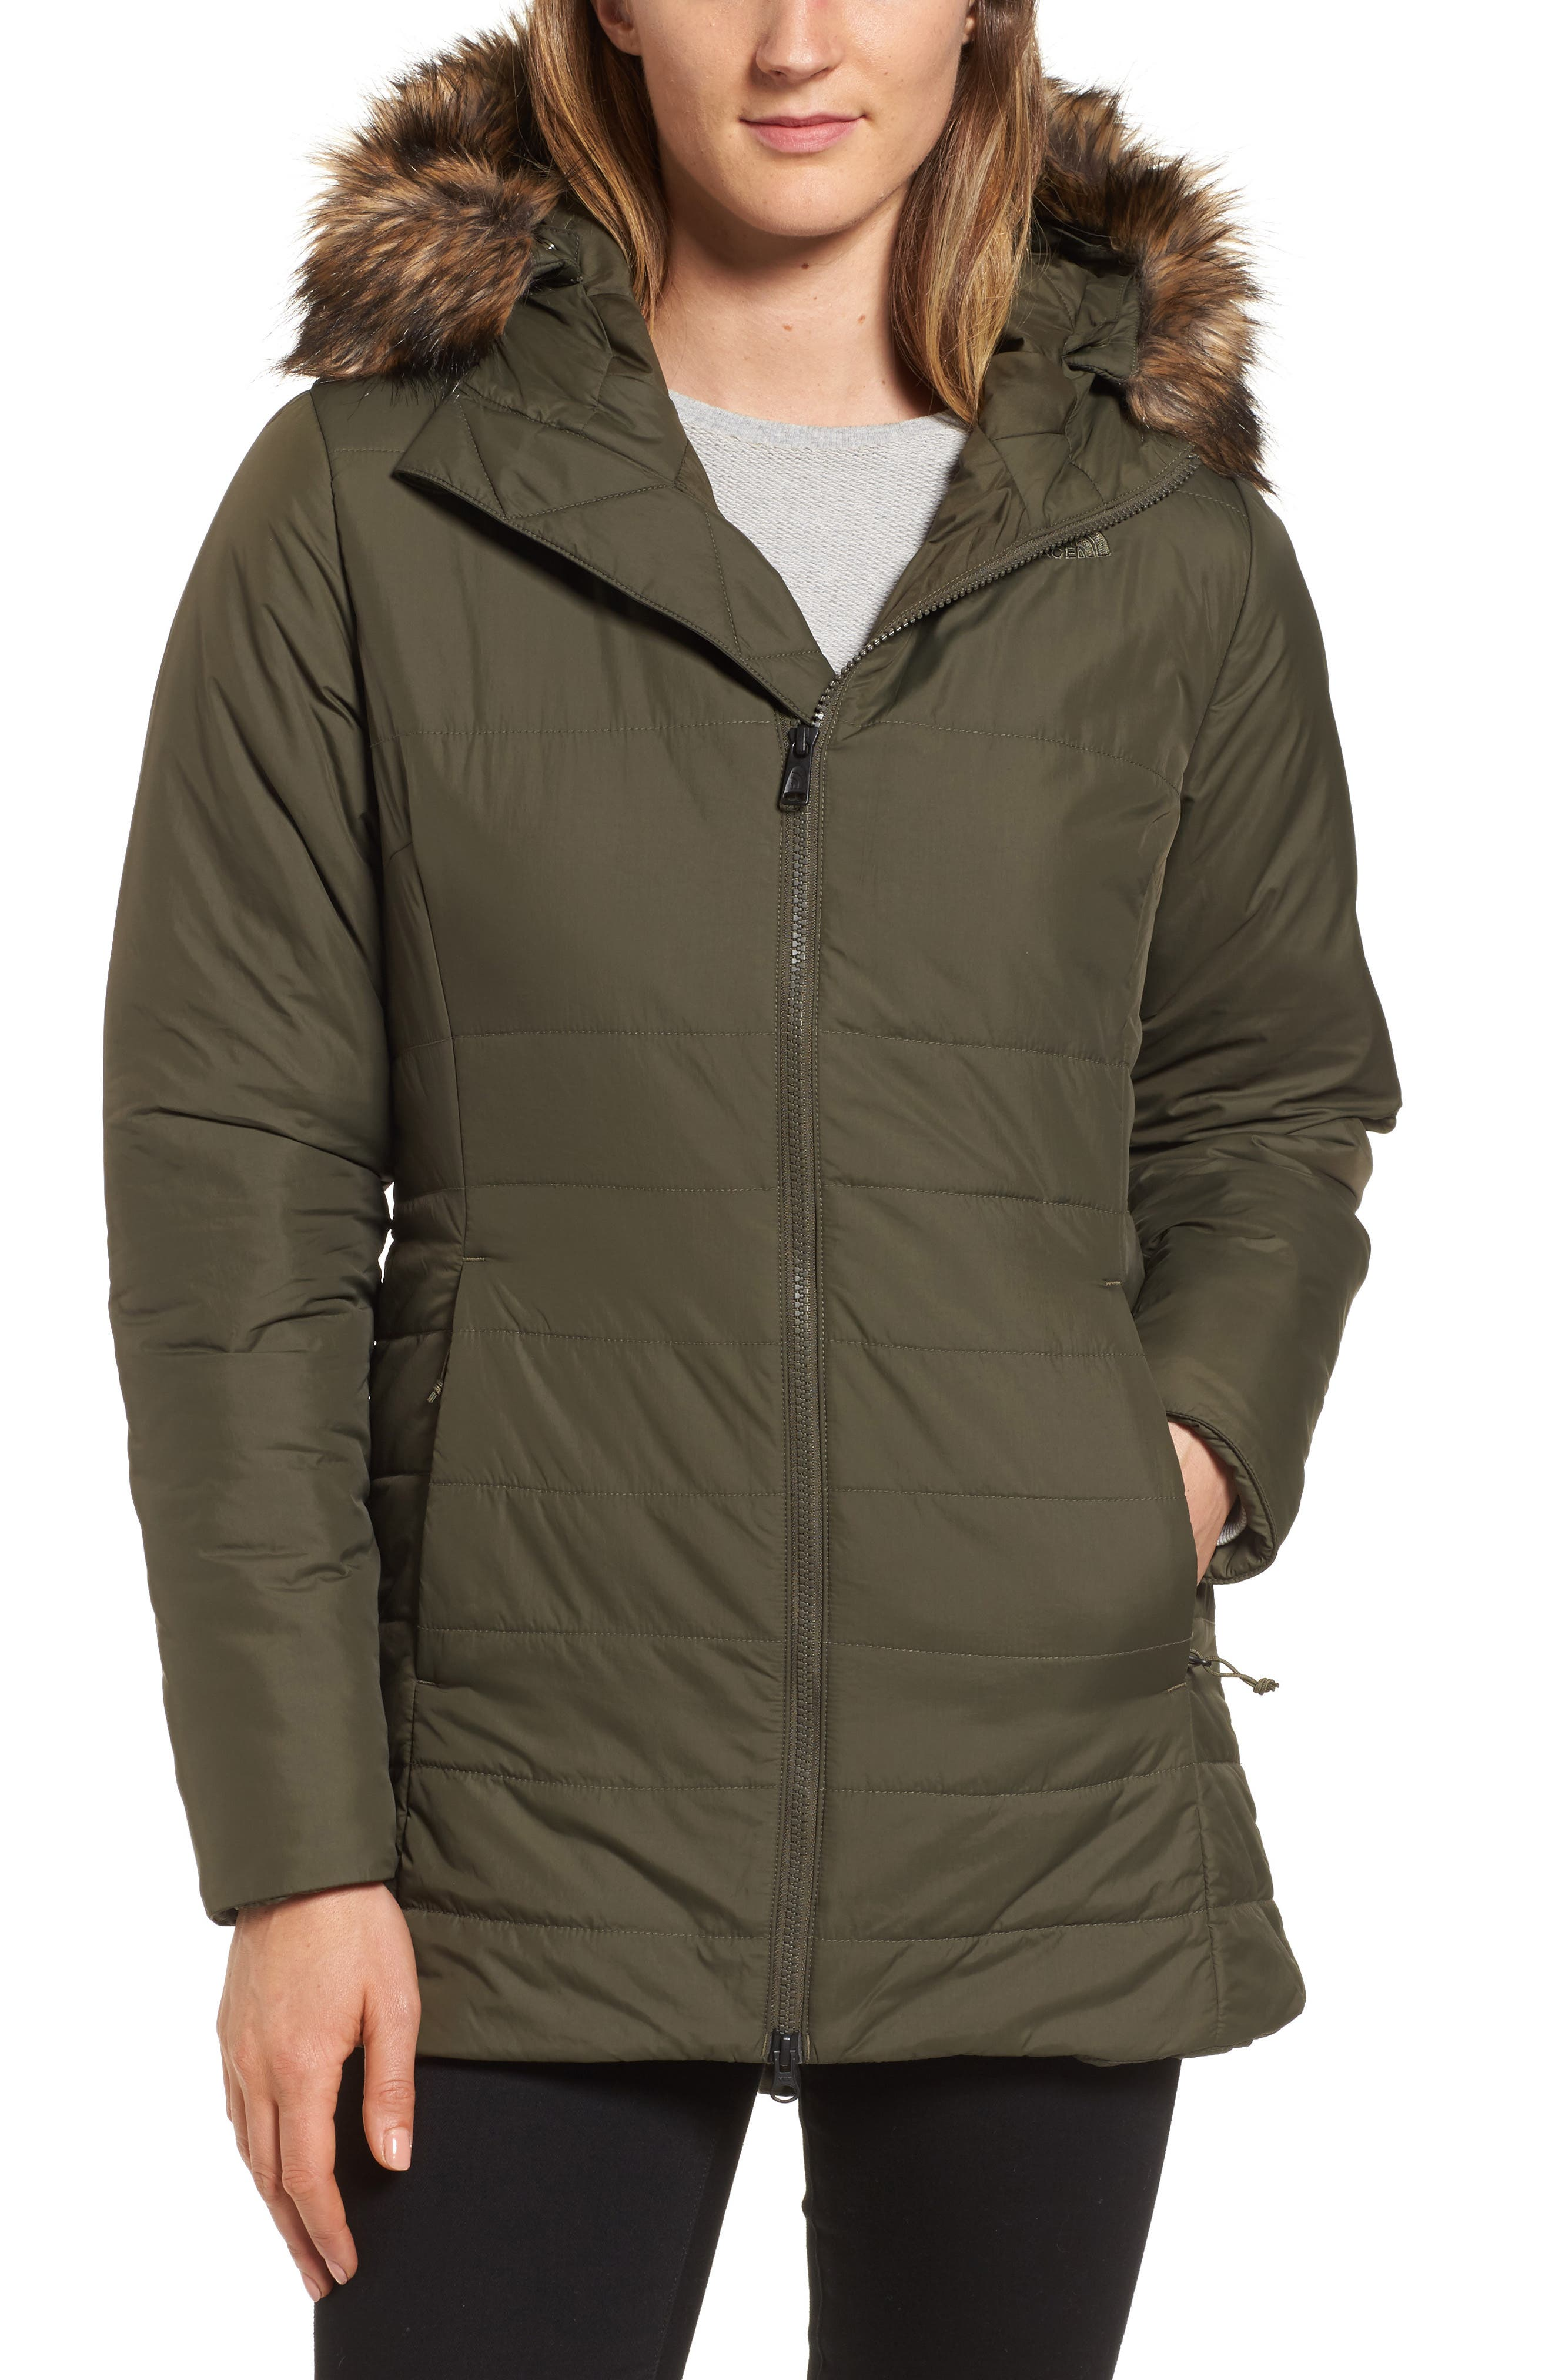 Coats Green Women's Jackets amp; Nordstrom 6X55qF